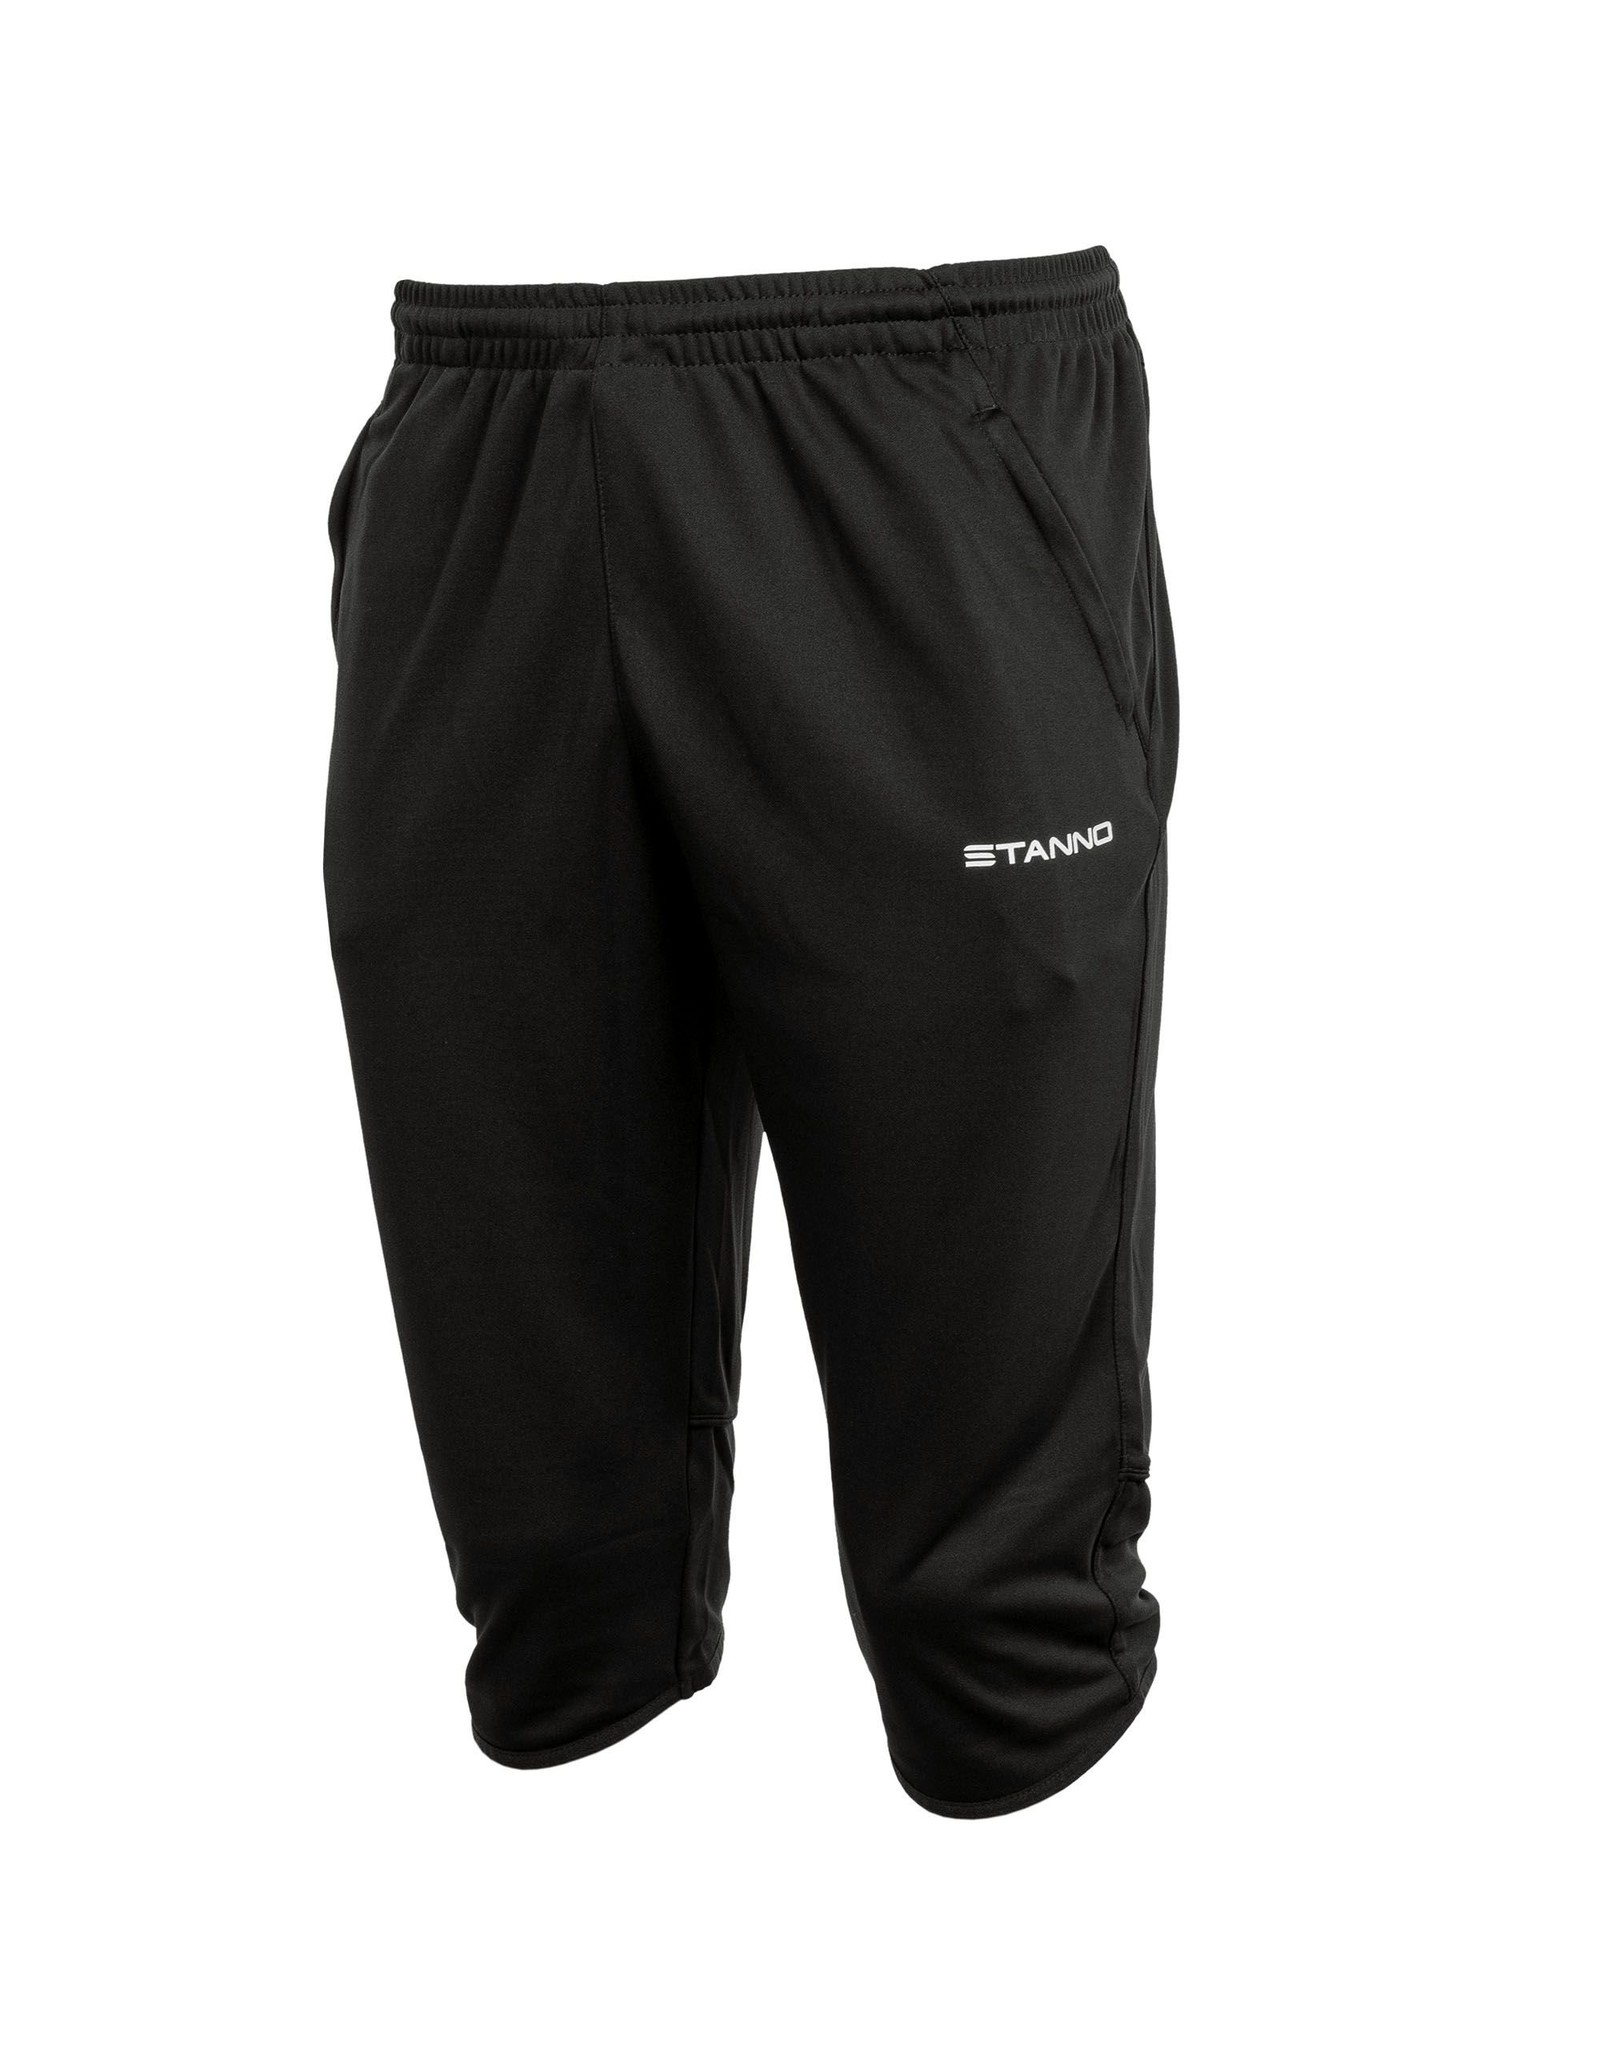 Stanno SVH'39 centro fitted training short